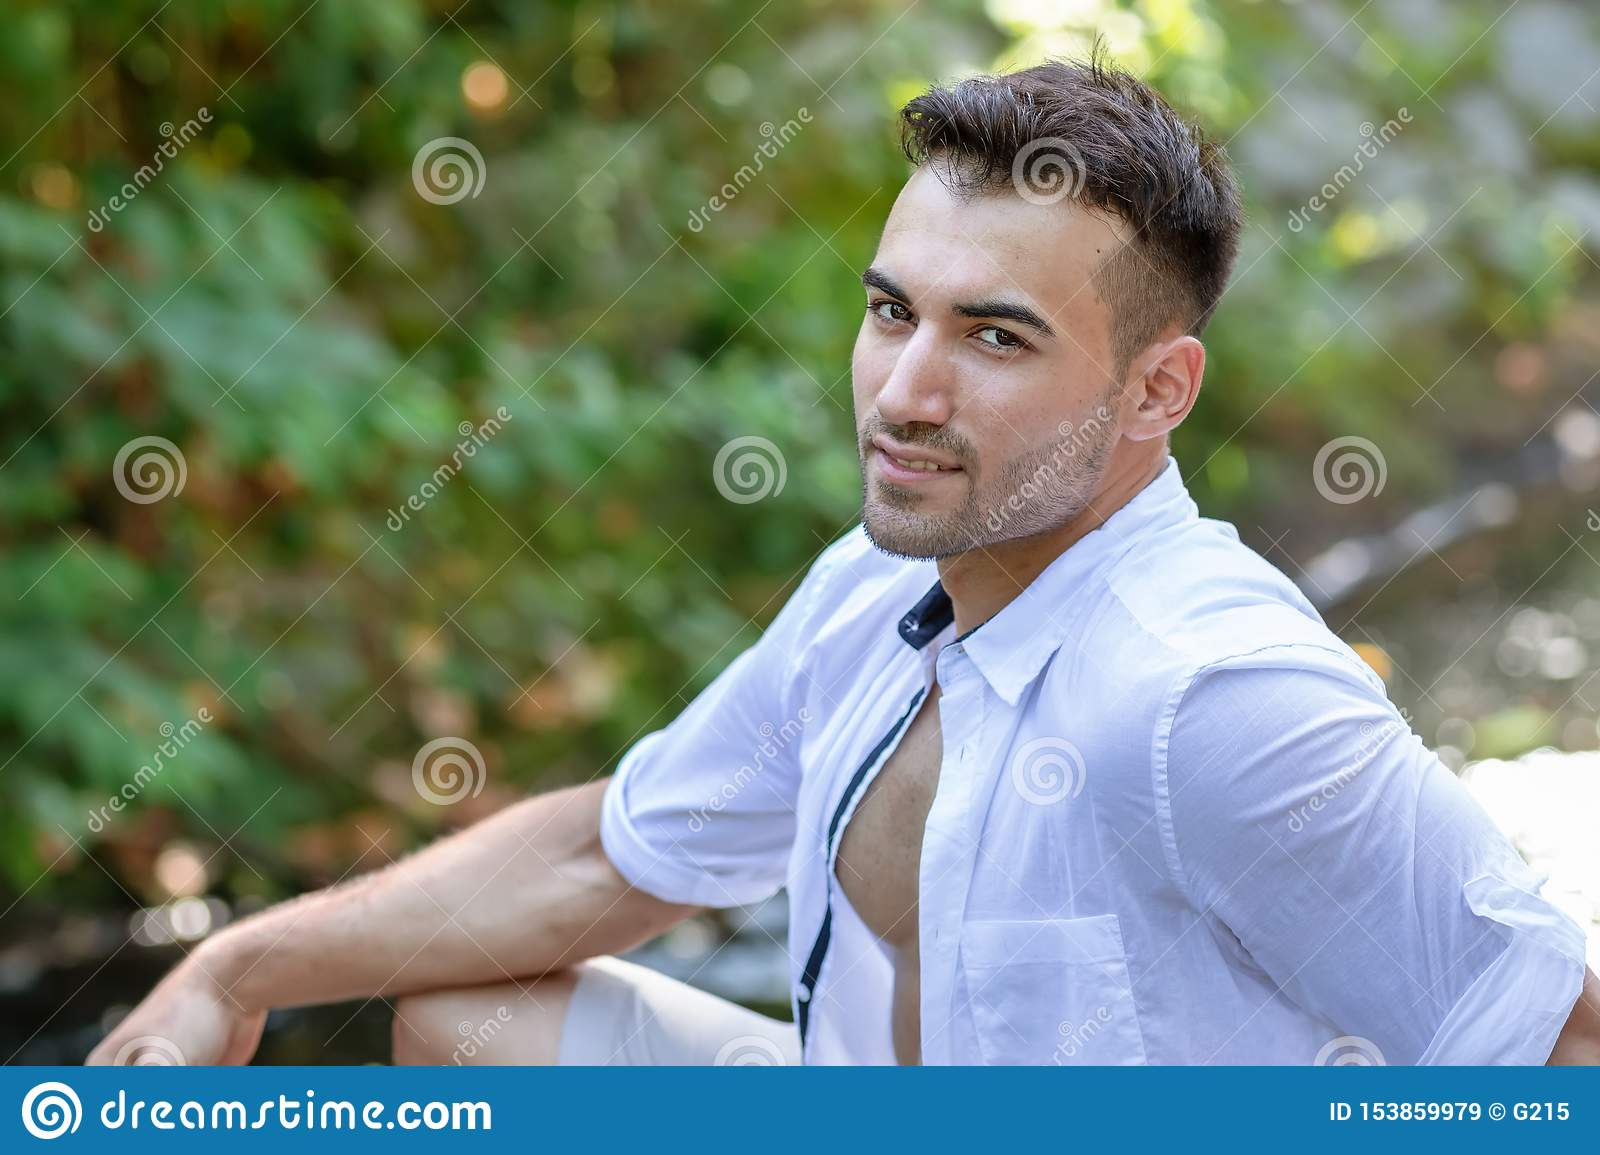 portrait of handsome young man, outdoor